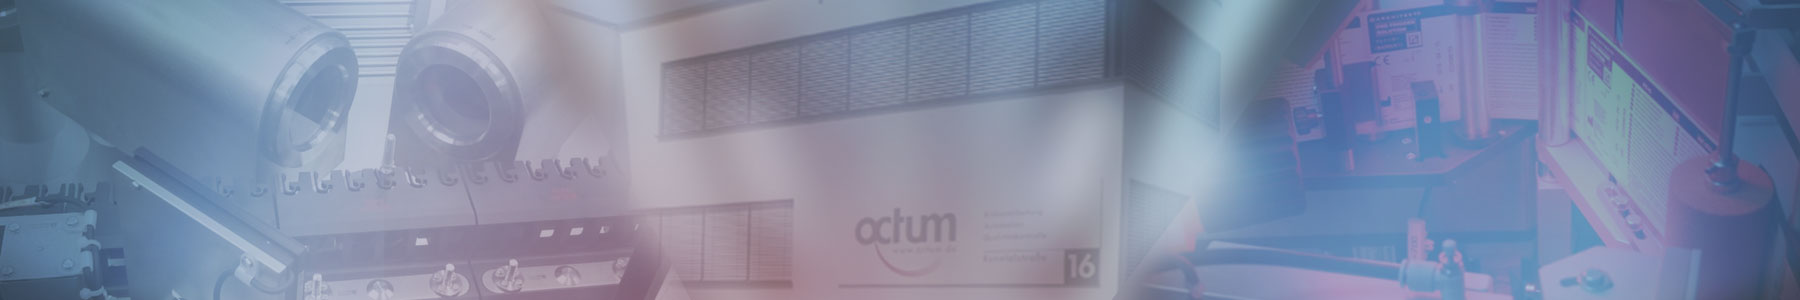 Octum GmbH